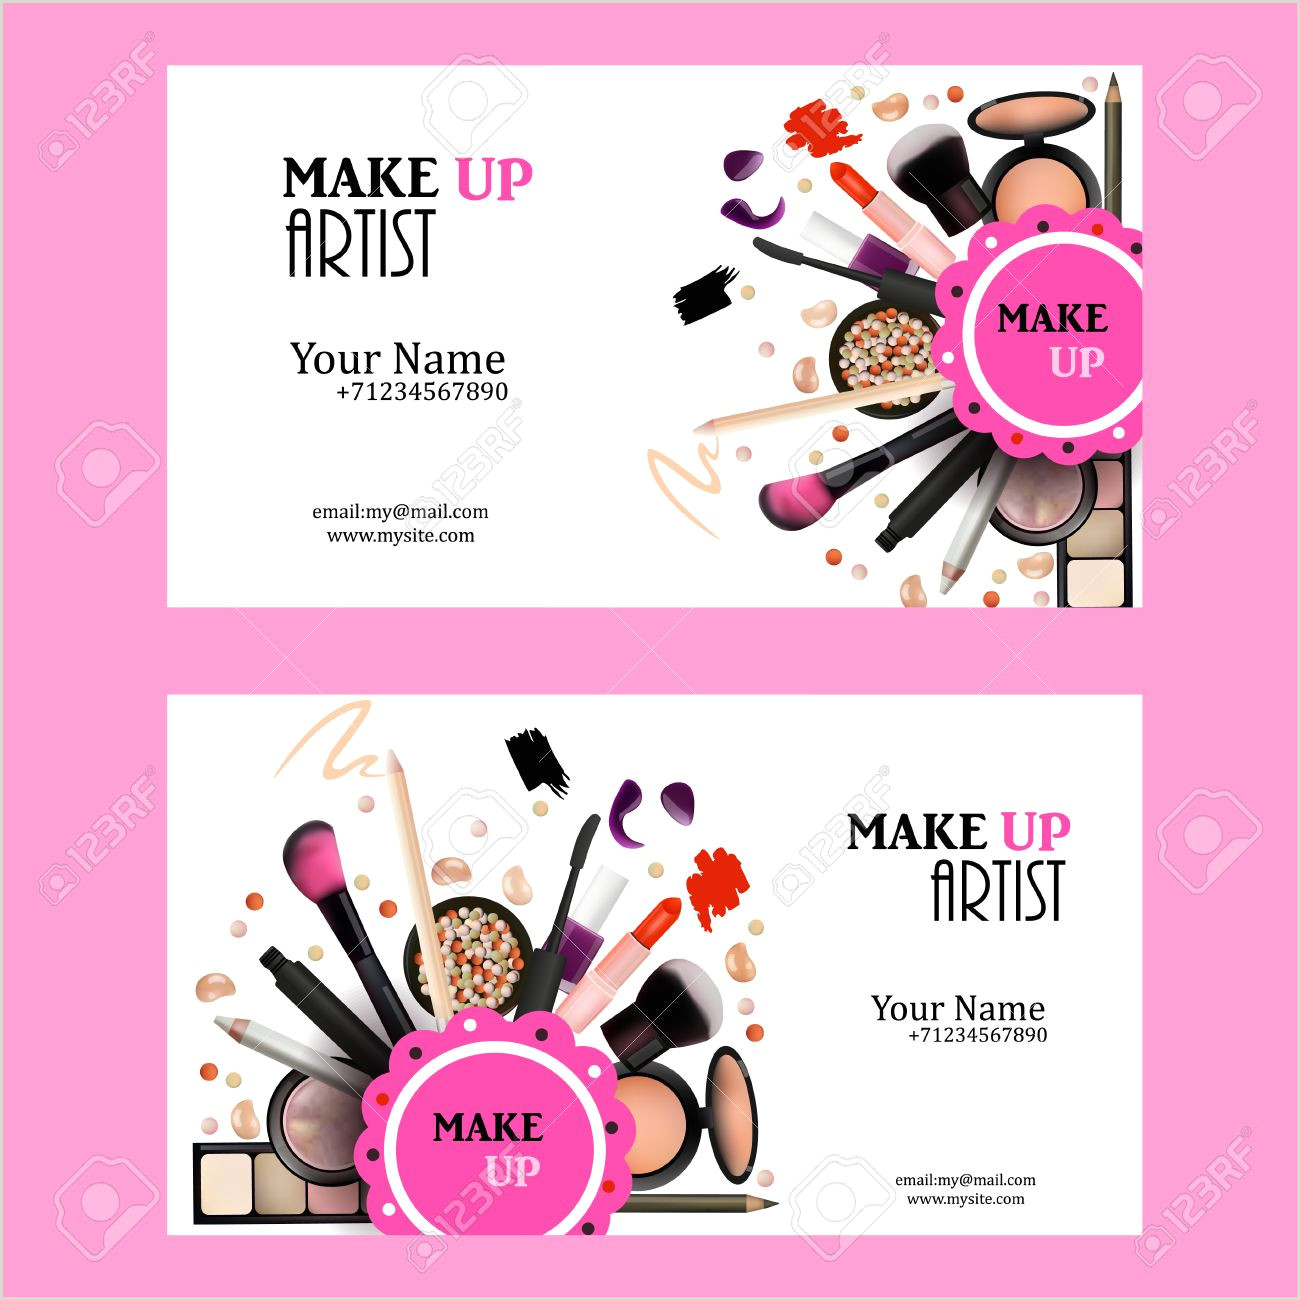 Unique Makeup Business Cards Make Up Artist Business Card Design Set Cosmetic Products Vector